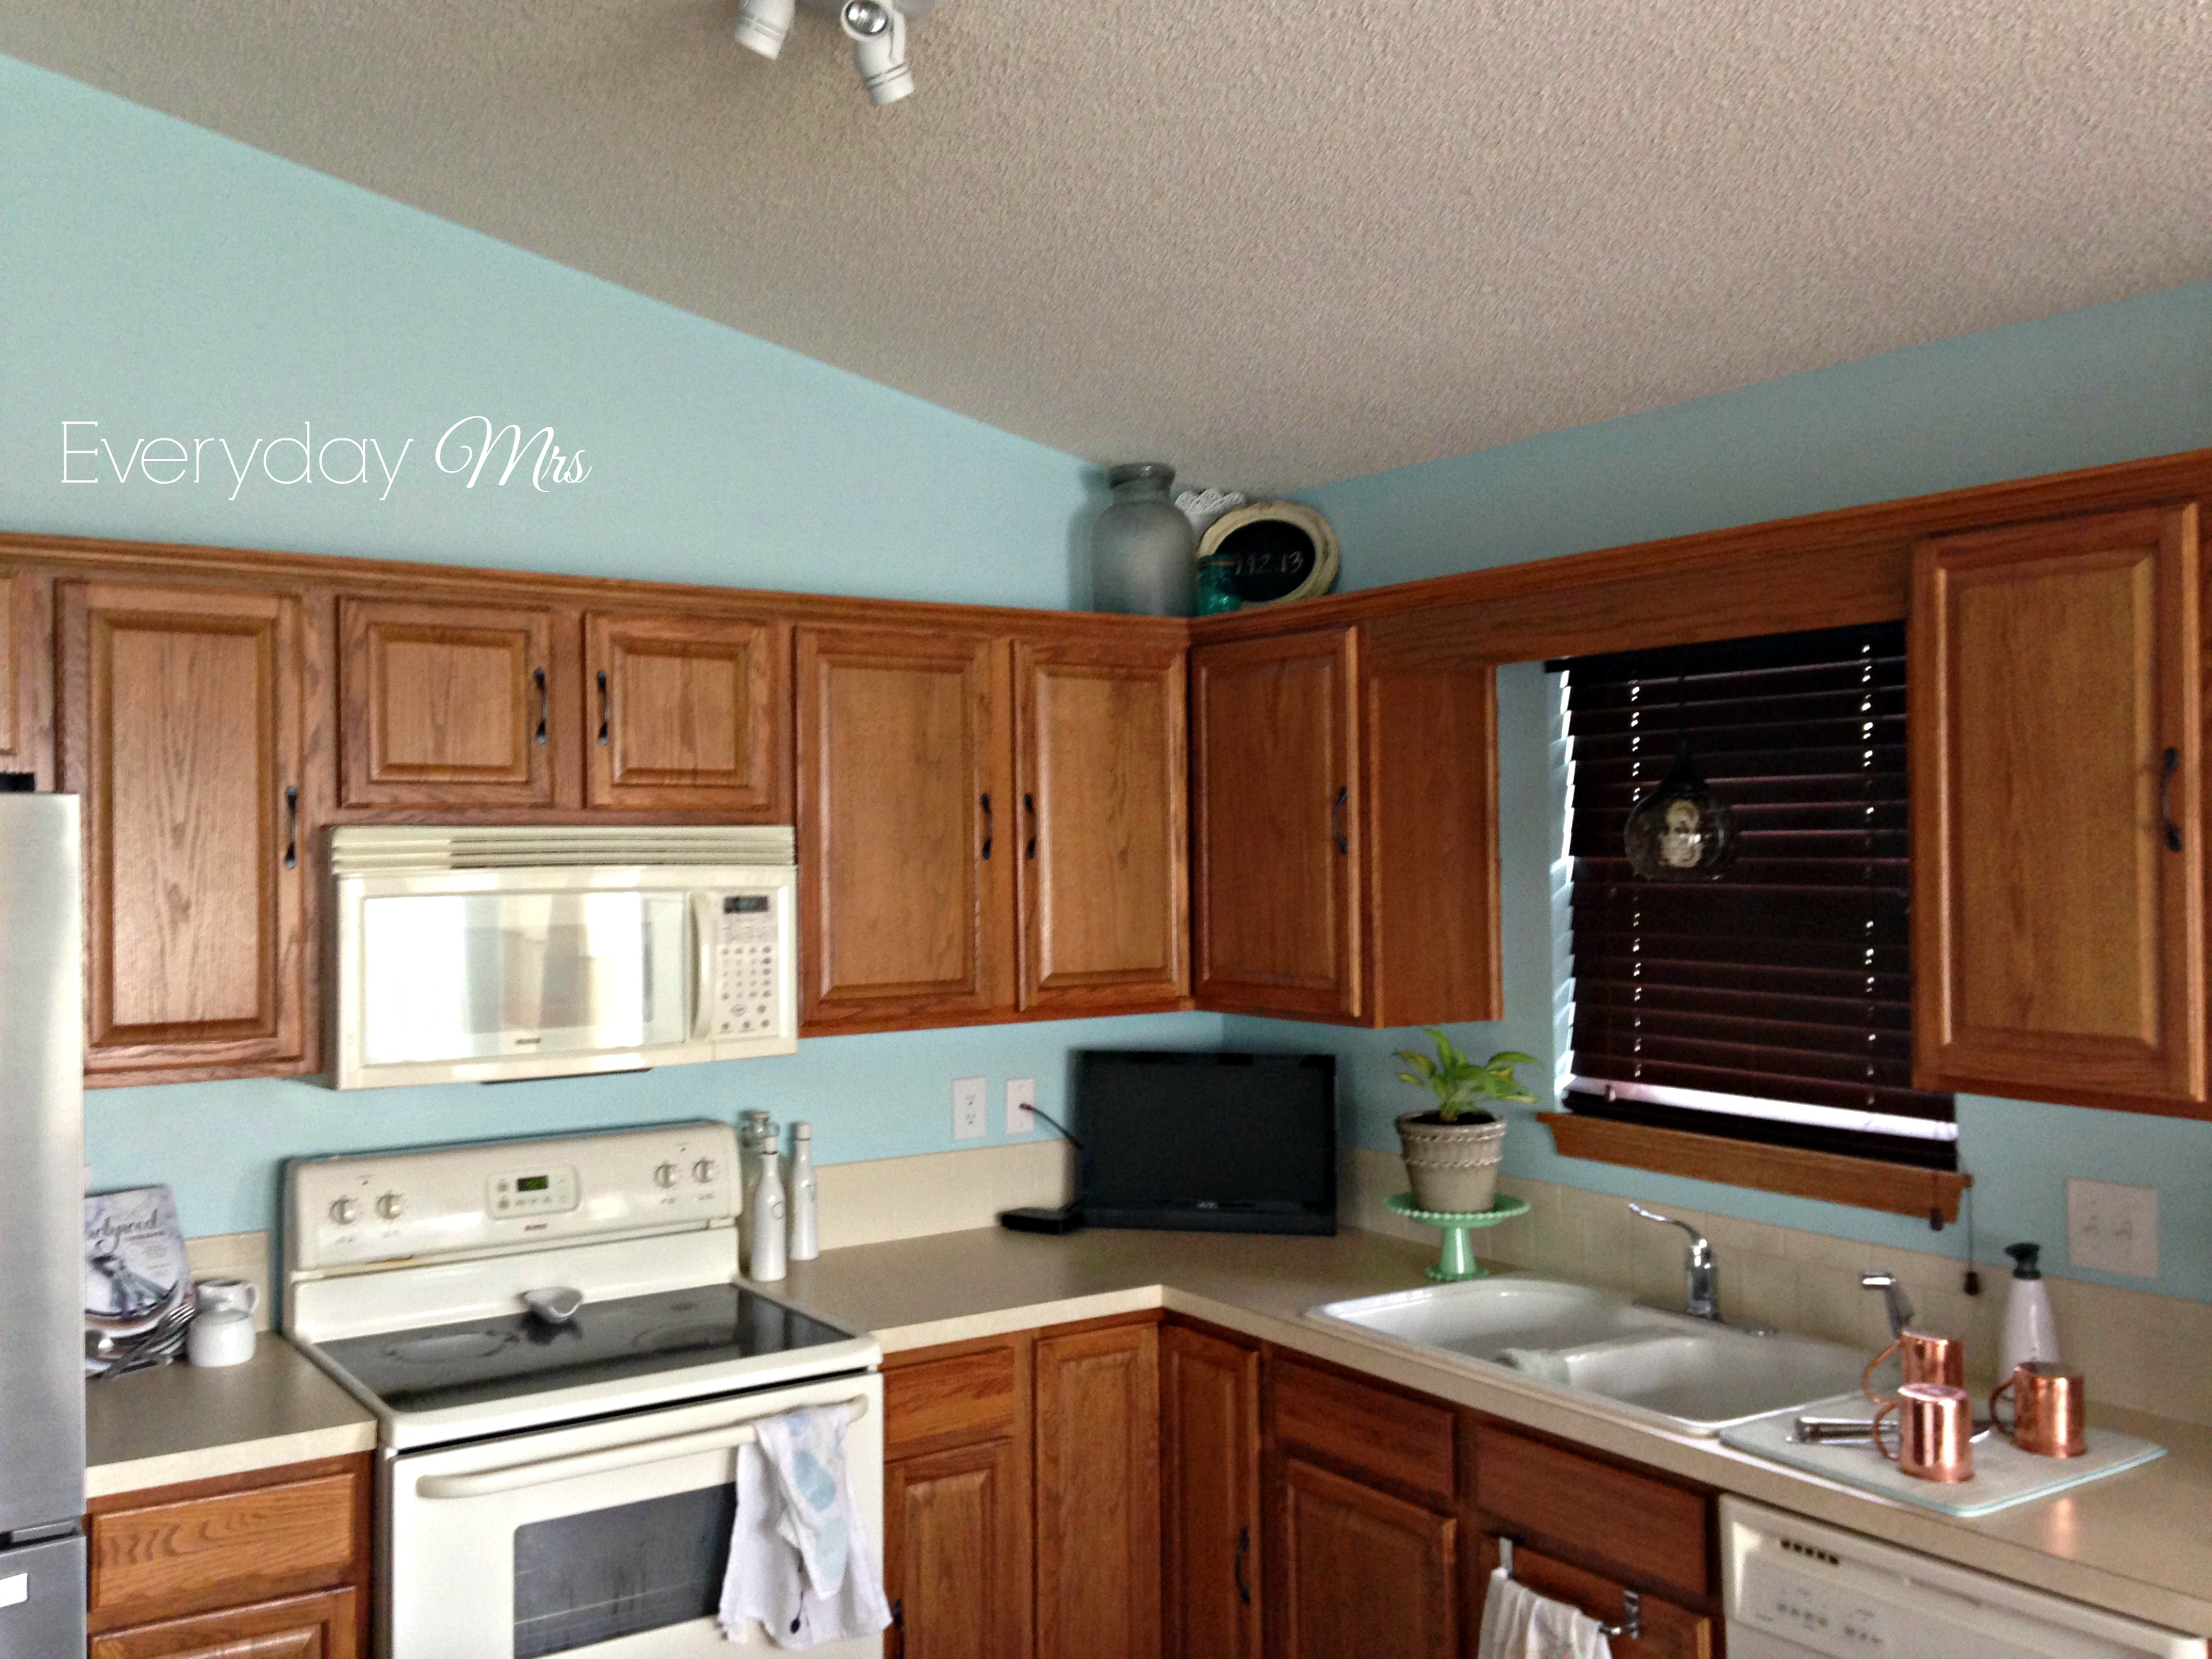 kitchen with pickled oak cabinets updated. & Pickled Oak Cabinets Updated. Pickled Oak Cabinets Furniture Wood ...